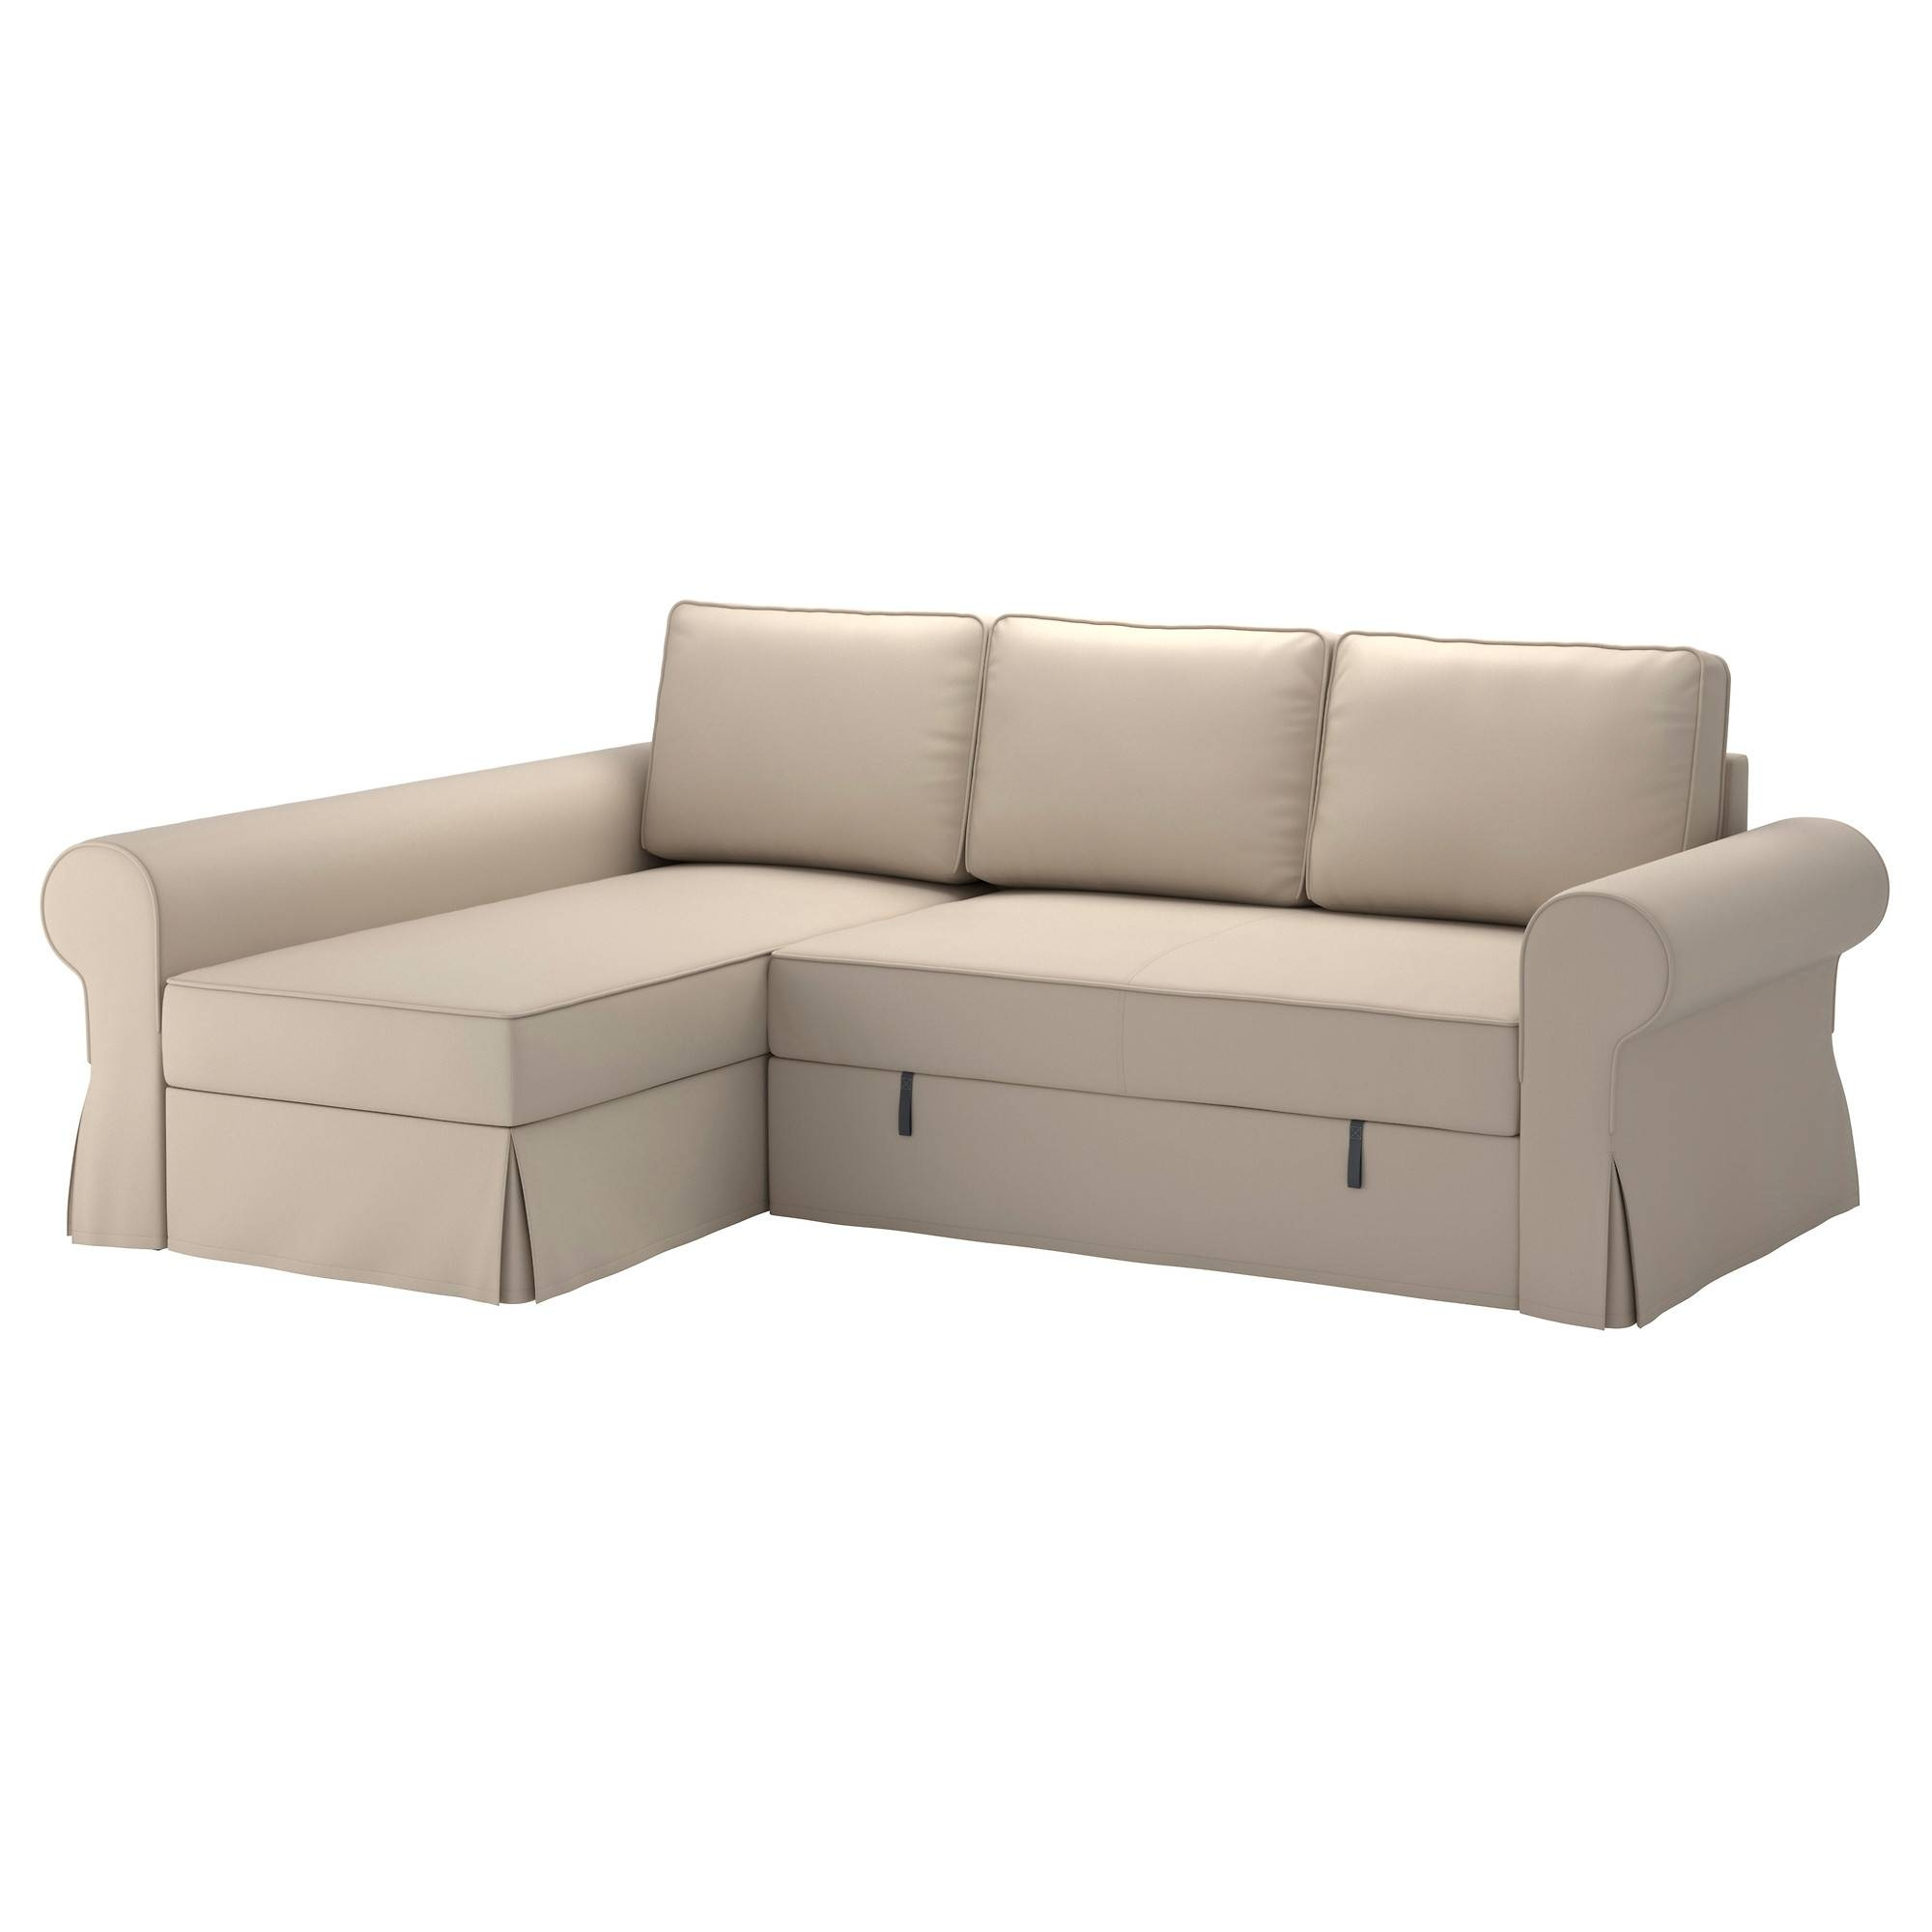 Backabro Sofa Bed With Chaise Longue Ramna Beige - Ikea in Chaise Longue Sofa Beds (Image 3 of 15)